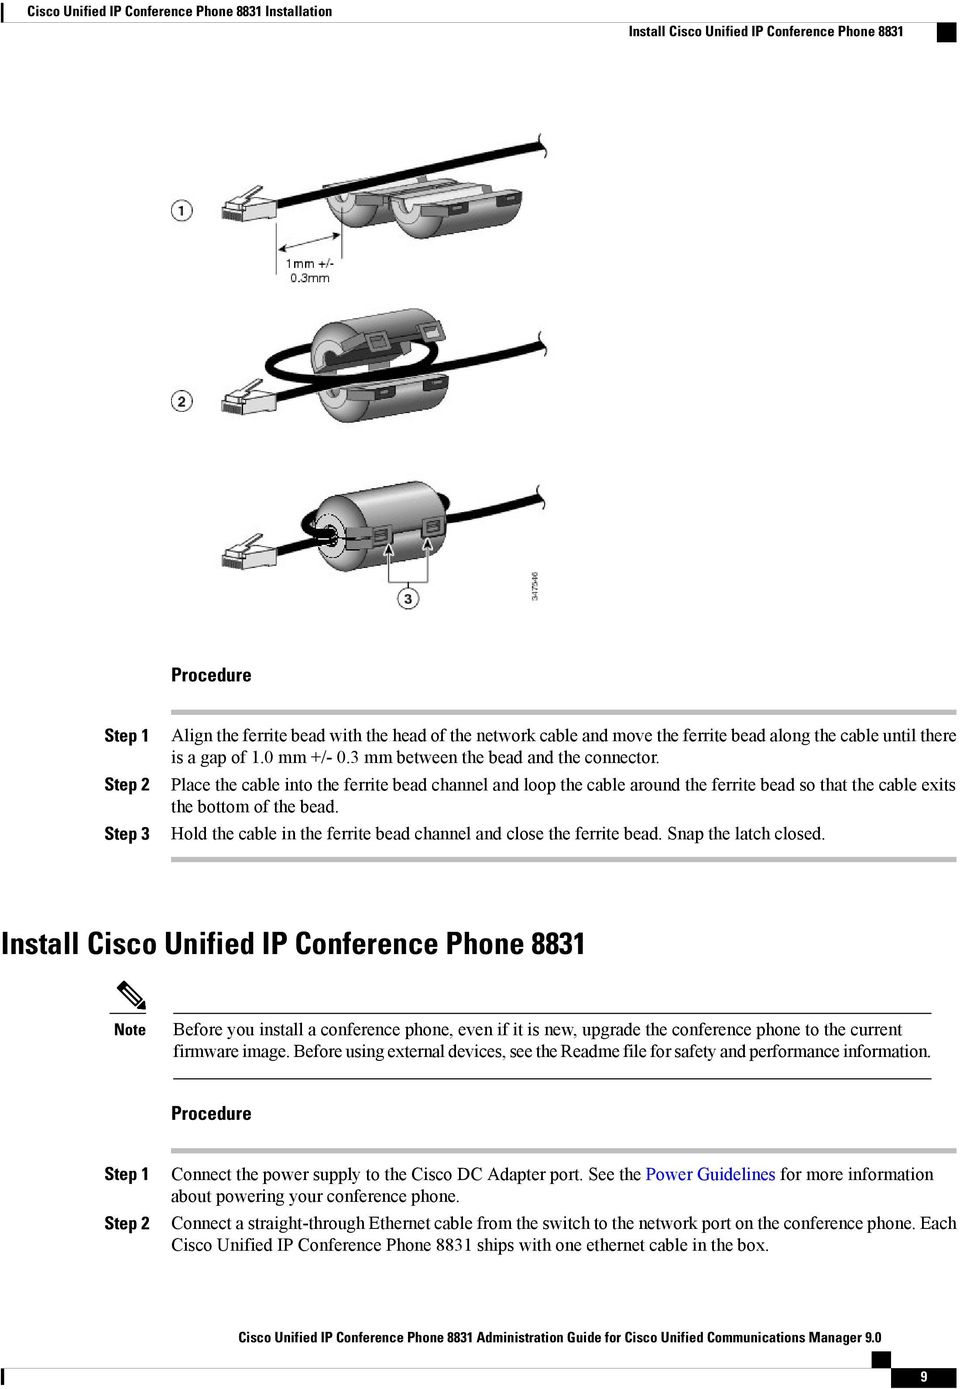 Cisco Unified Ip Conference Phone 8831 Installation Pdf Straight Through Network Cable Wiring Place The Into Ferrite Bead Channel And Loop Around